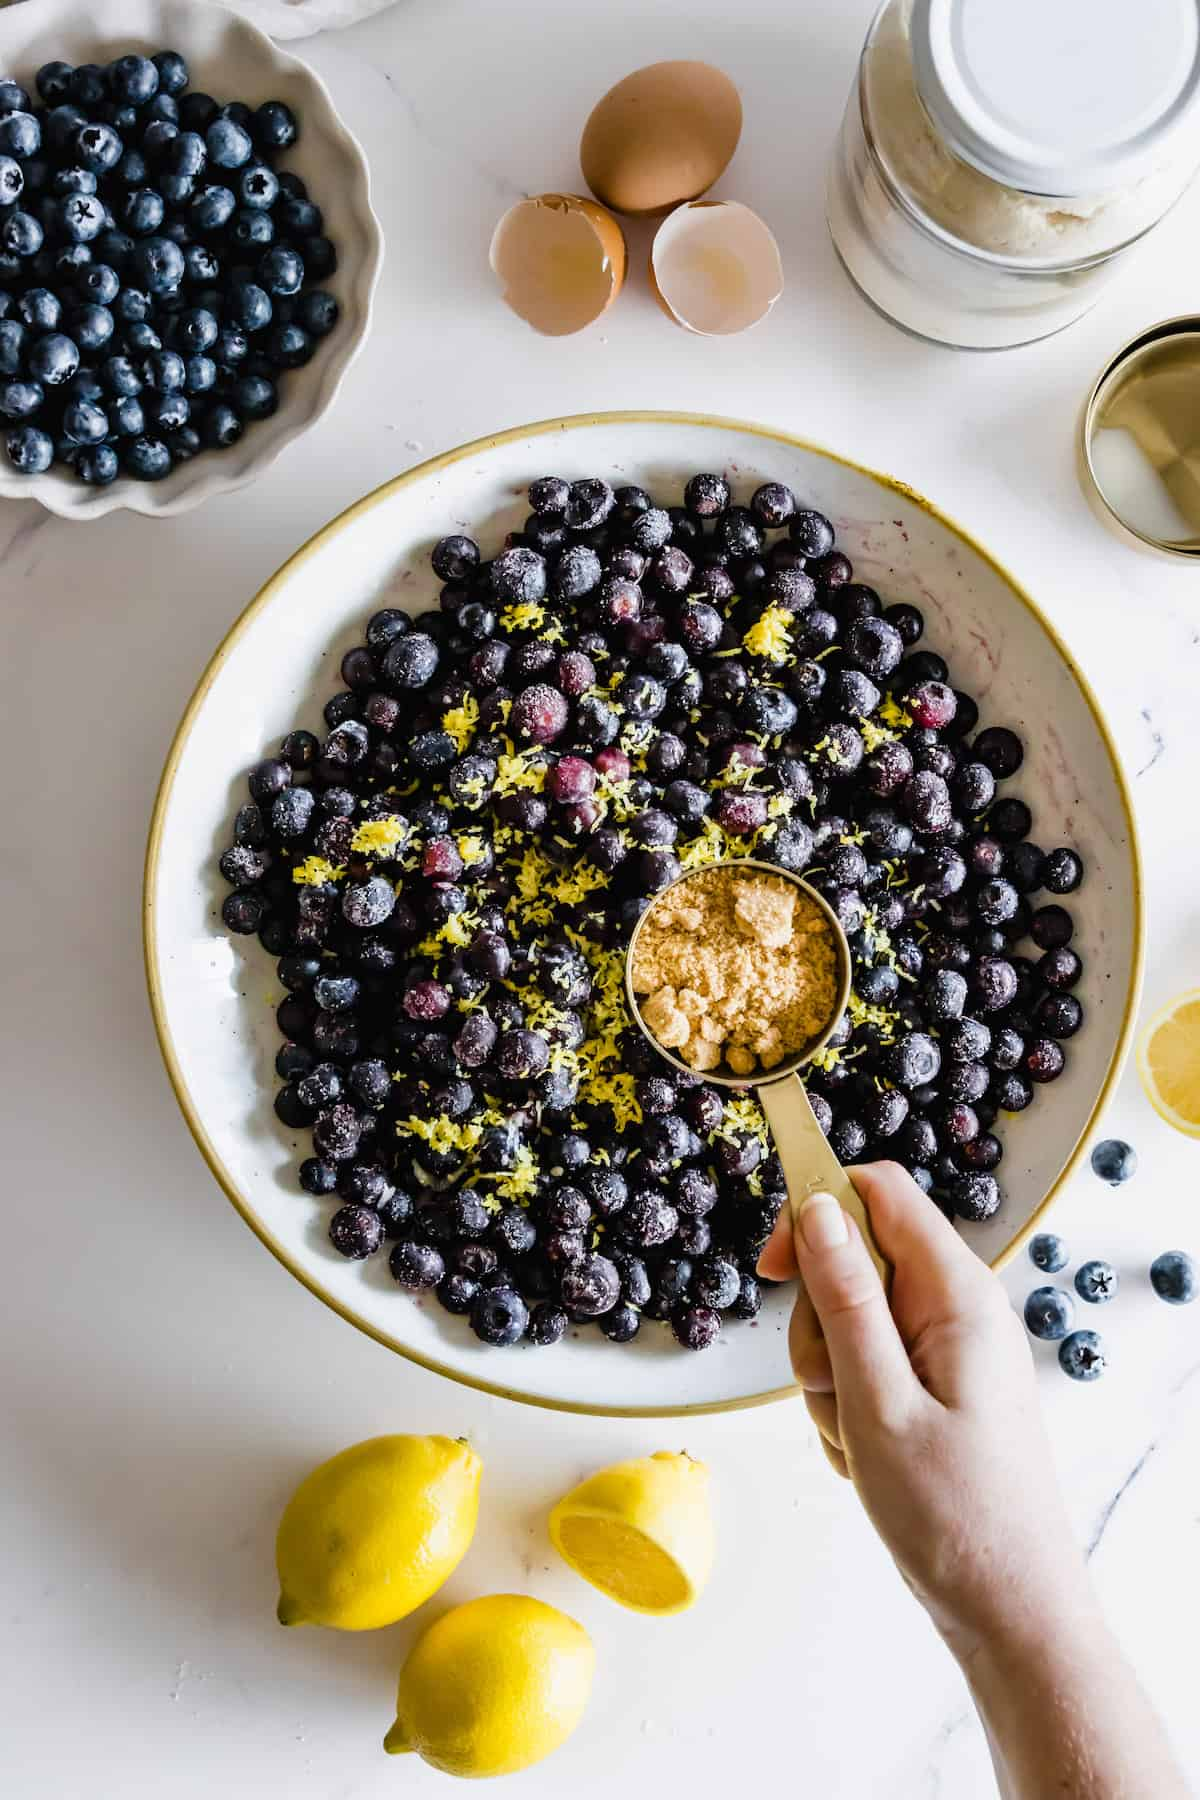 Brown Sugar Being Added to a Bowl of Blueberries, Lemon Juice and Lemon Zest